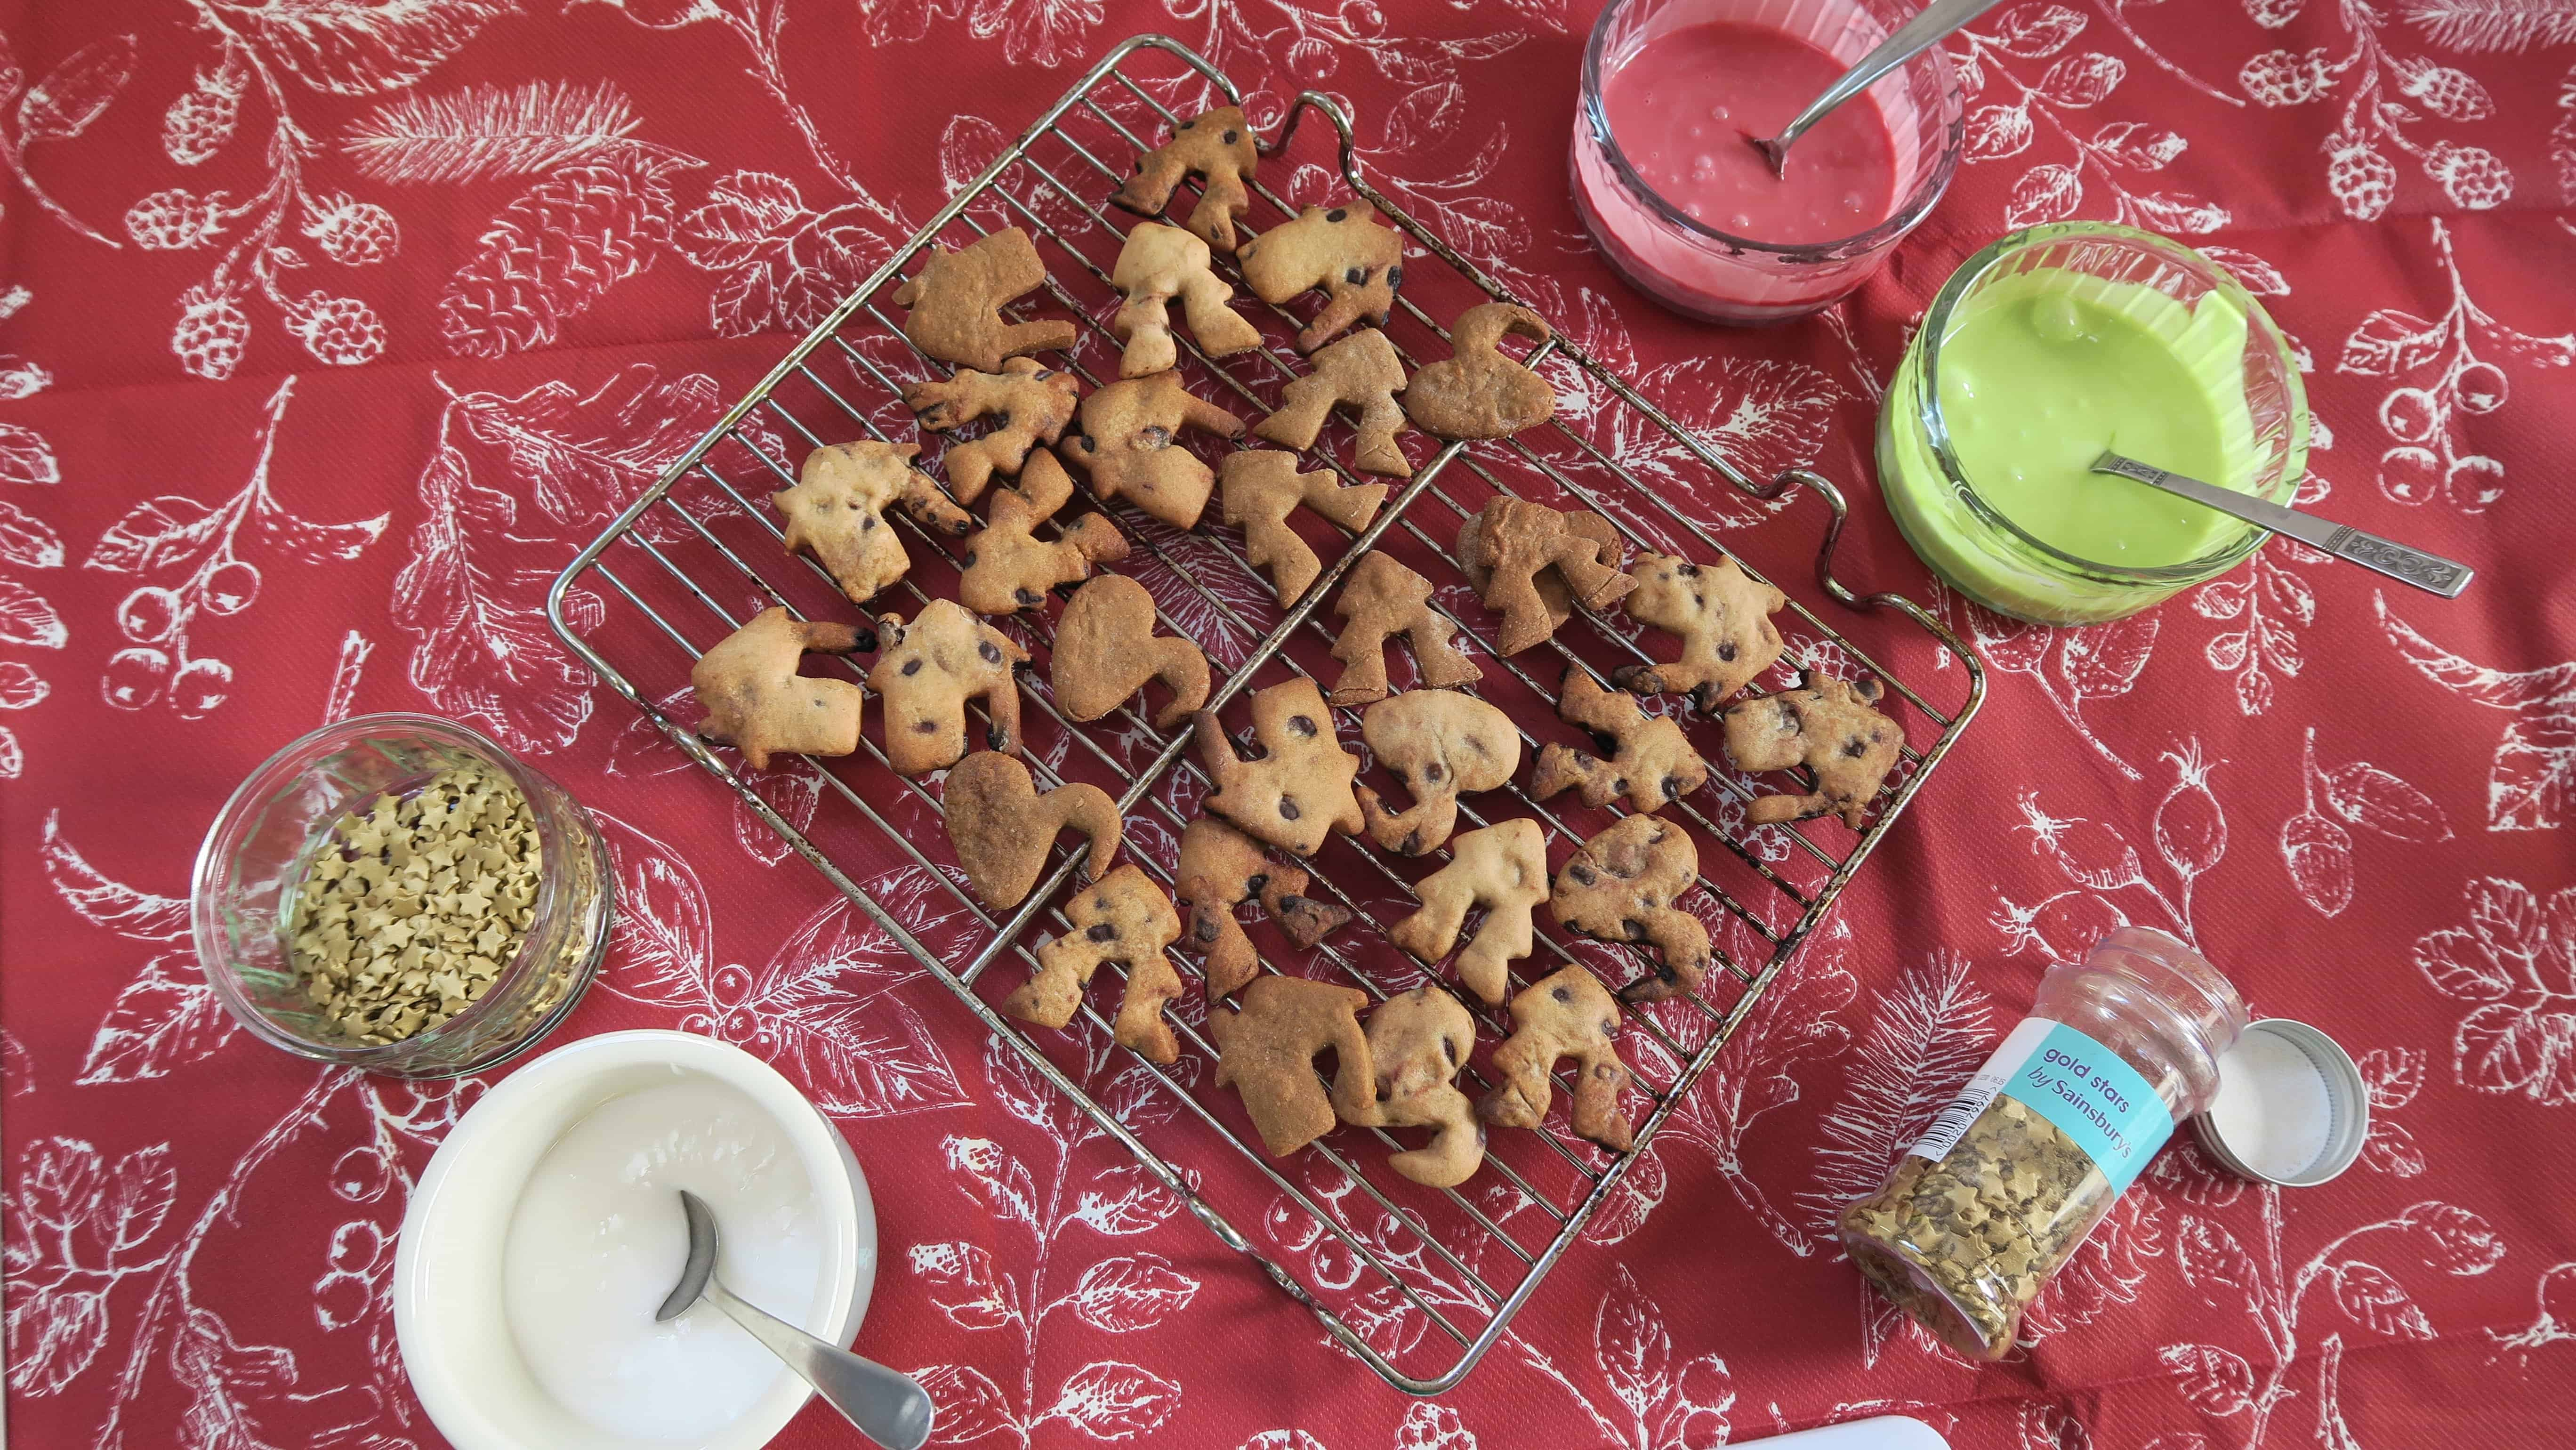 Decorating Gluten Dairy Nut And Egg Free Christmas Mug Cookies The Gluten Free Blogger